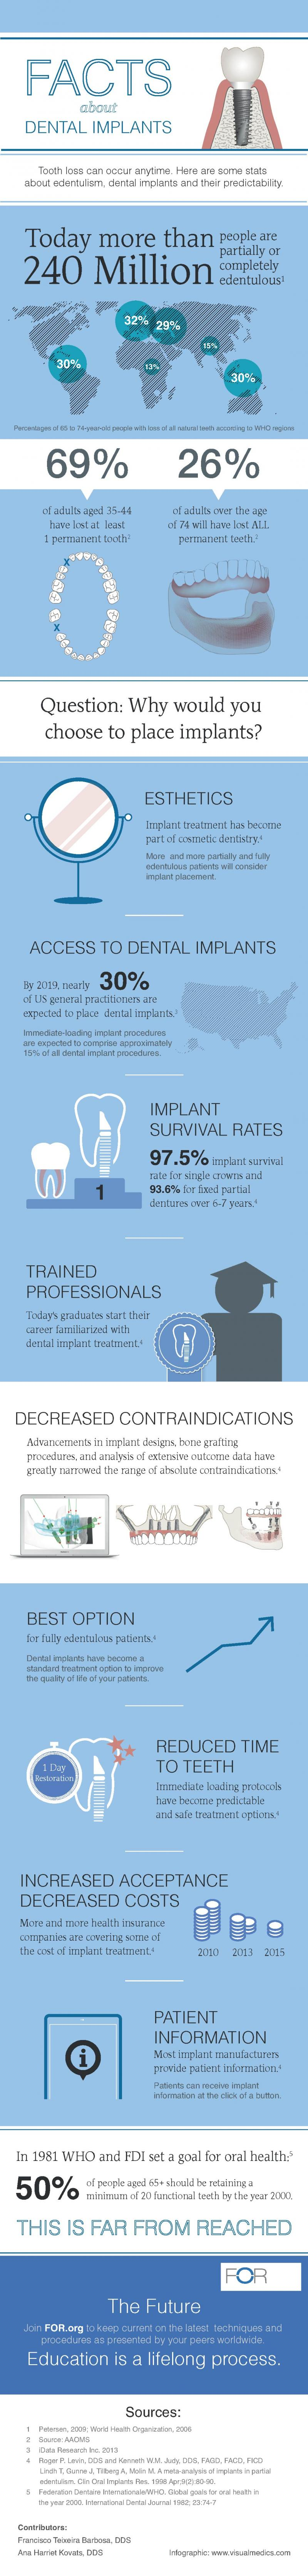 Dental-implant-facts-infographic-web.jpg